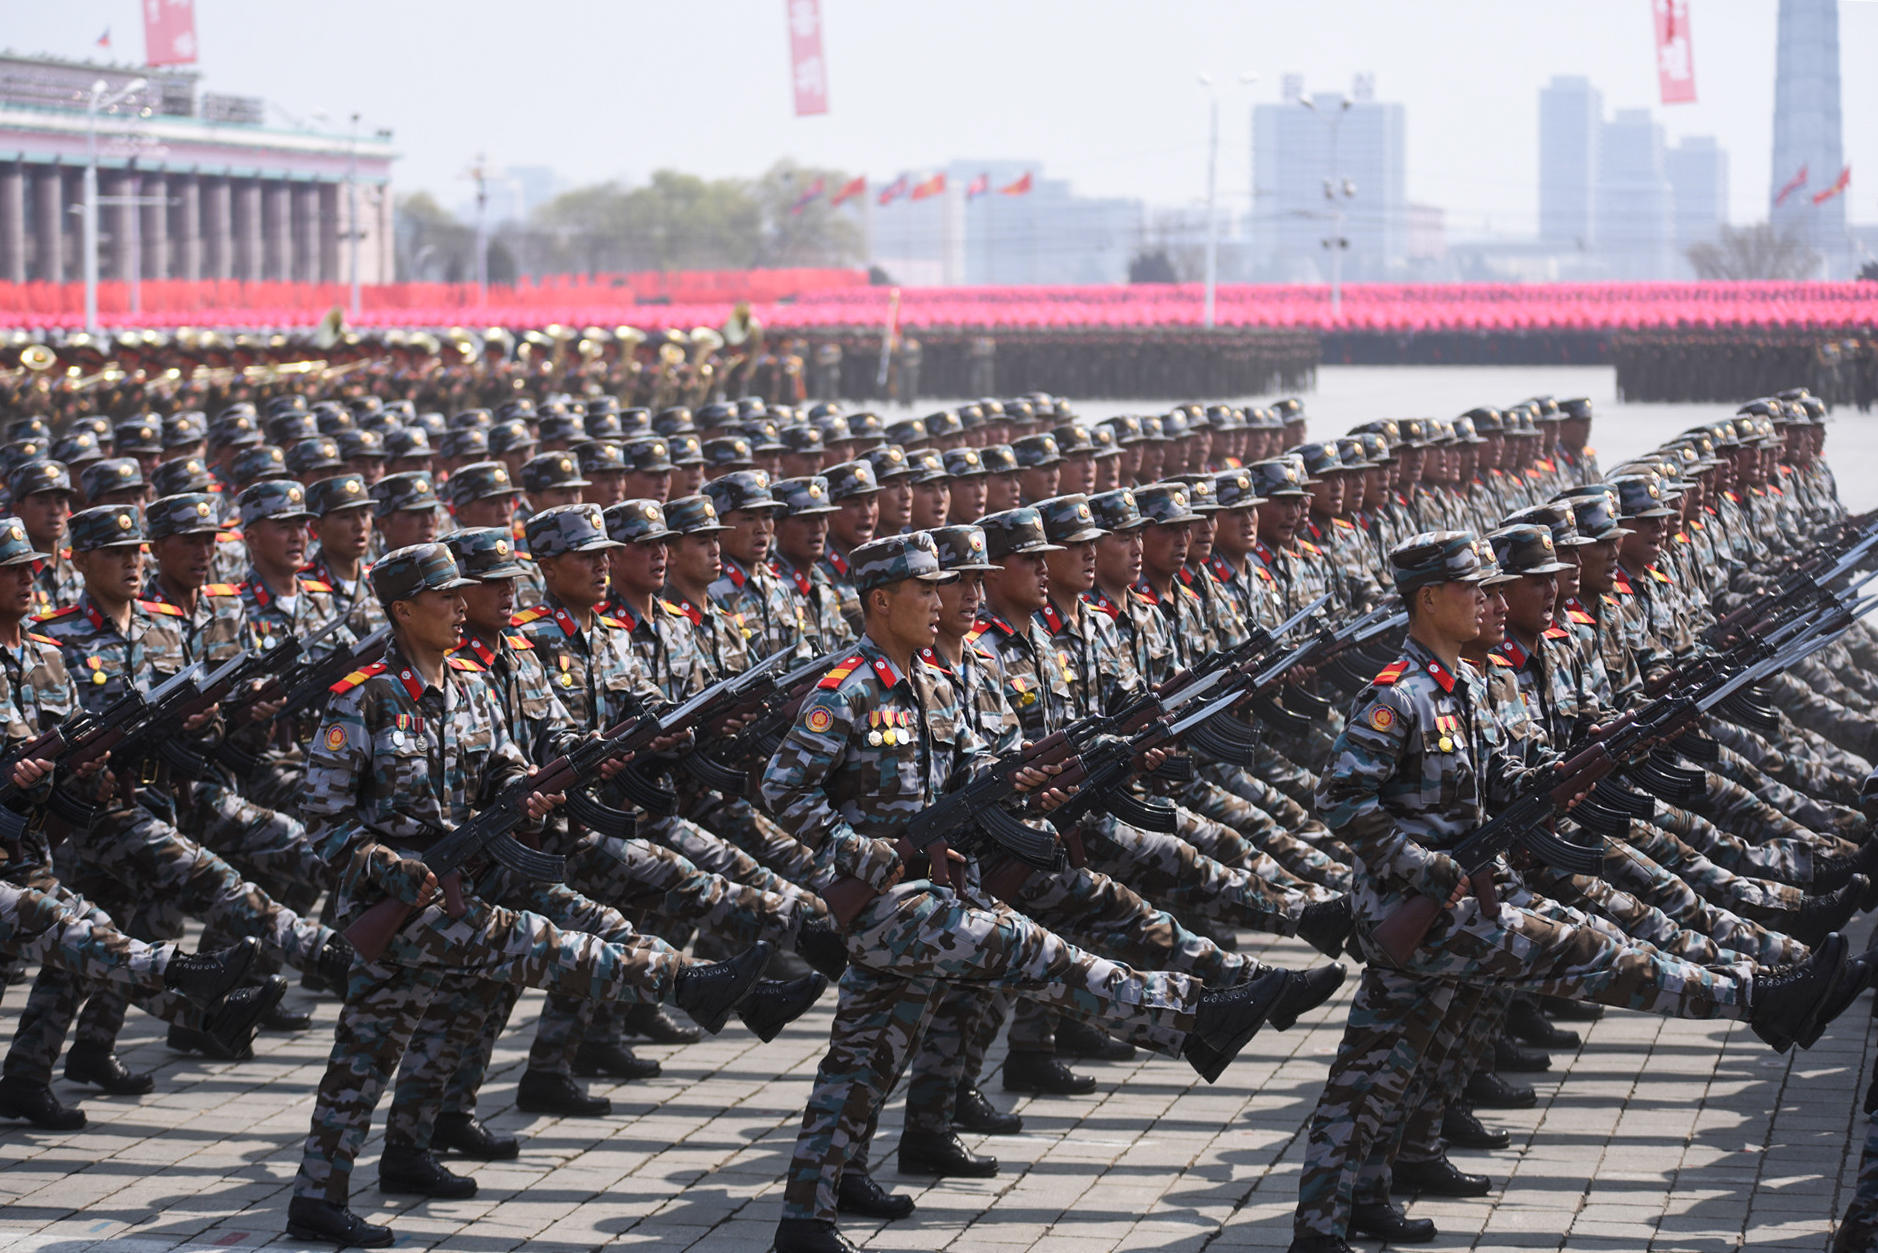 Soldiers attend a military parade in central Pyongyang (Cheng Dayu/Xinhua/Alamy Live News)